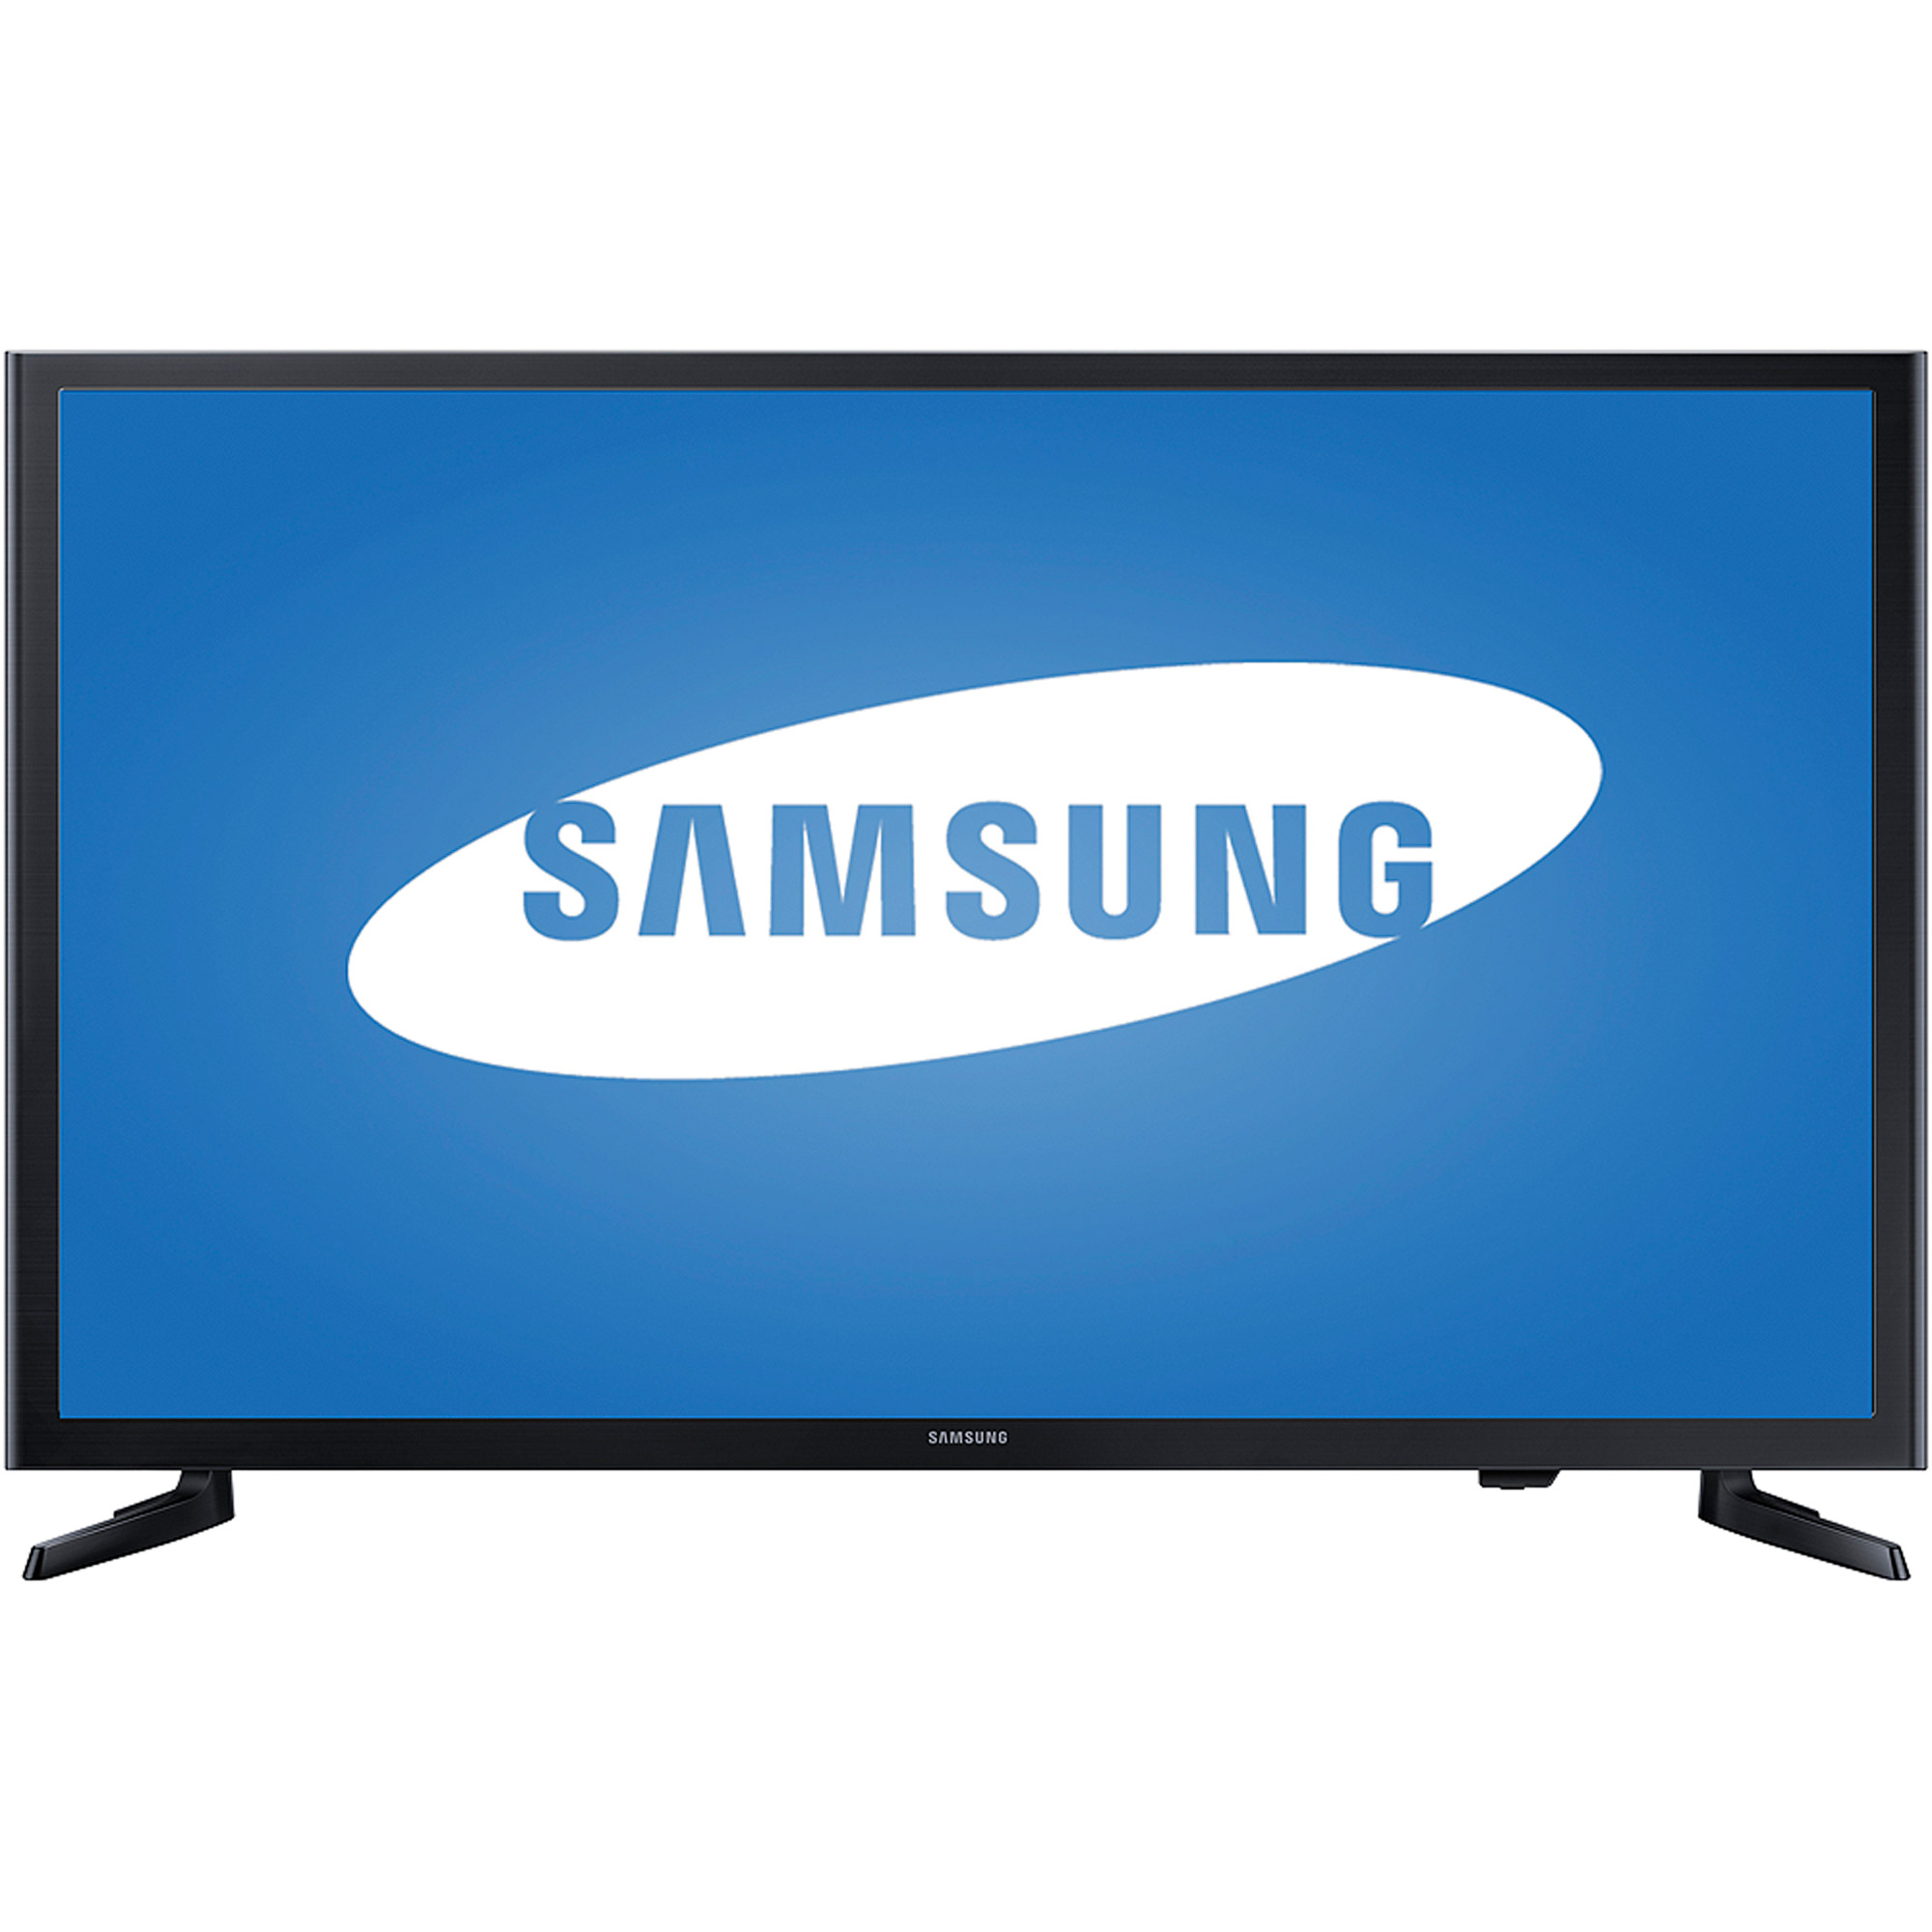 Samsung Flat Screen Tv Price 30